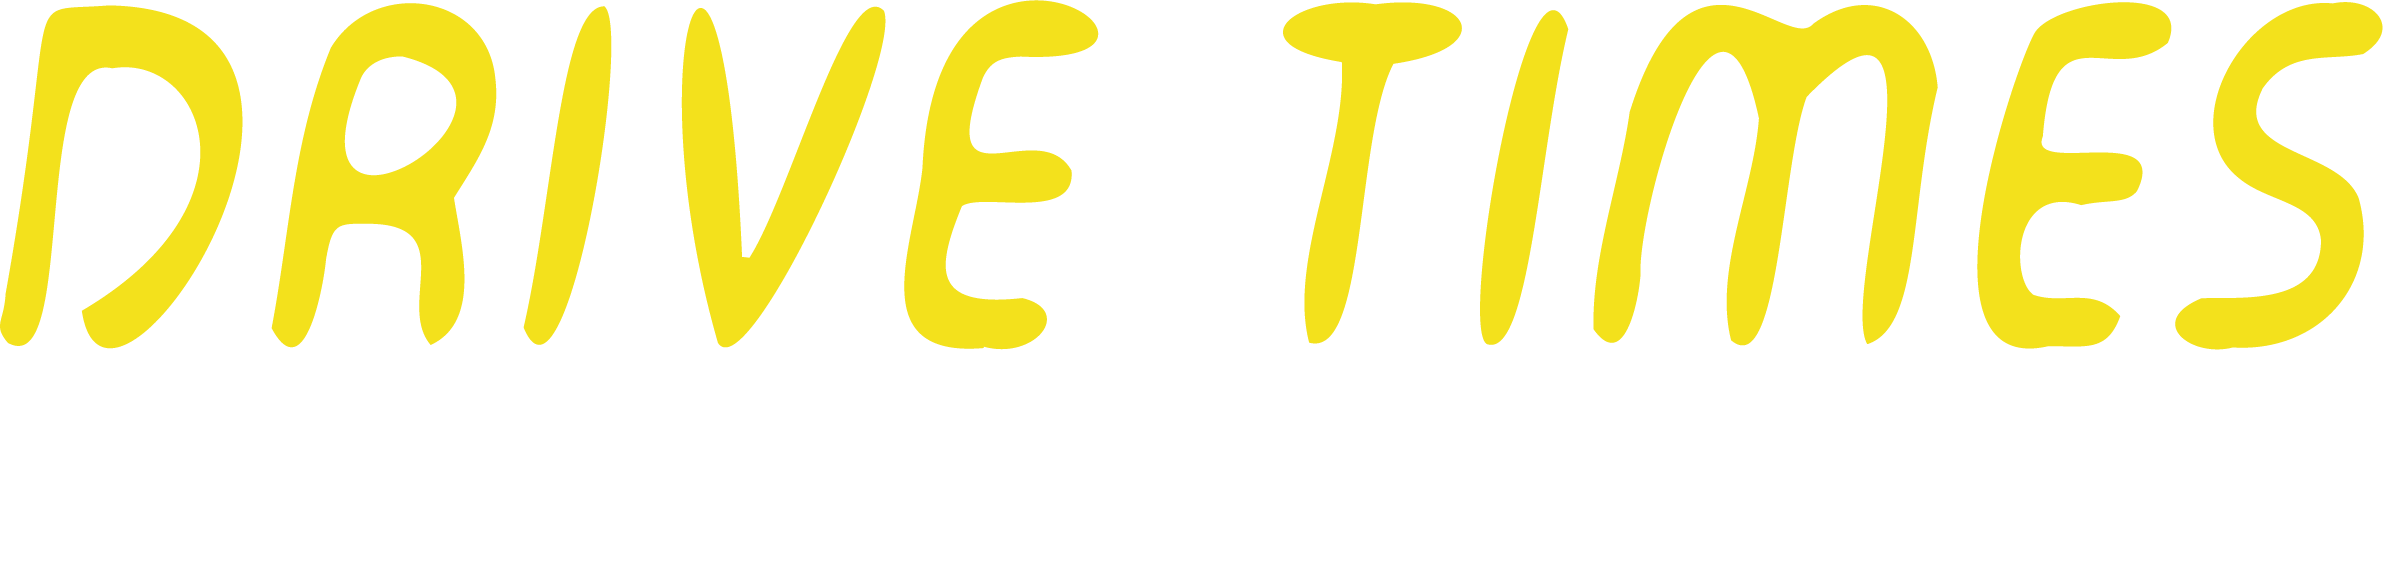 Drive Times National Driving School